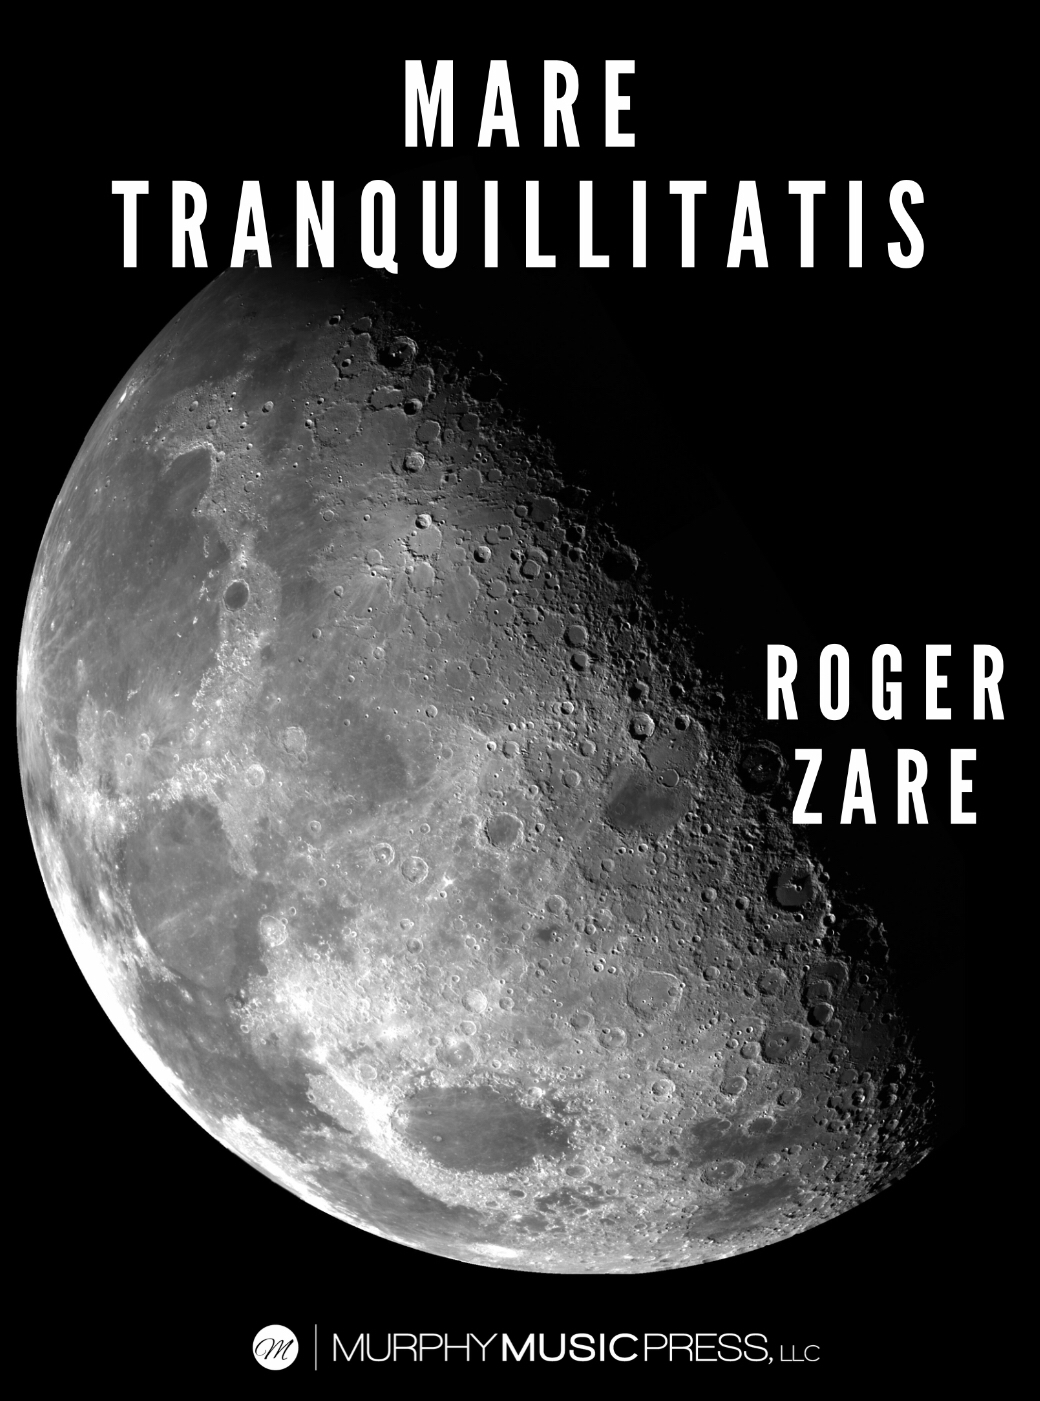 Mare Tranquillitatis by Roger Zare